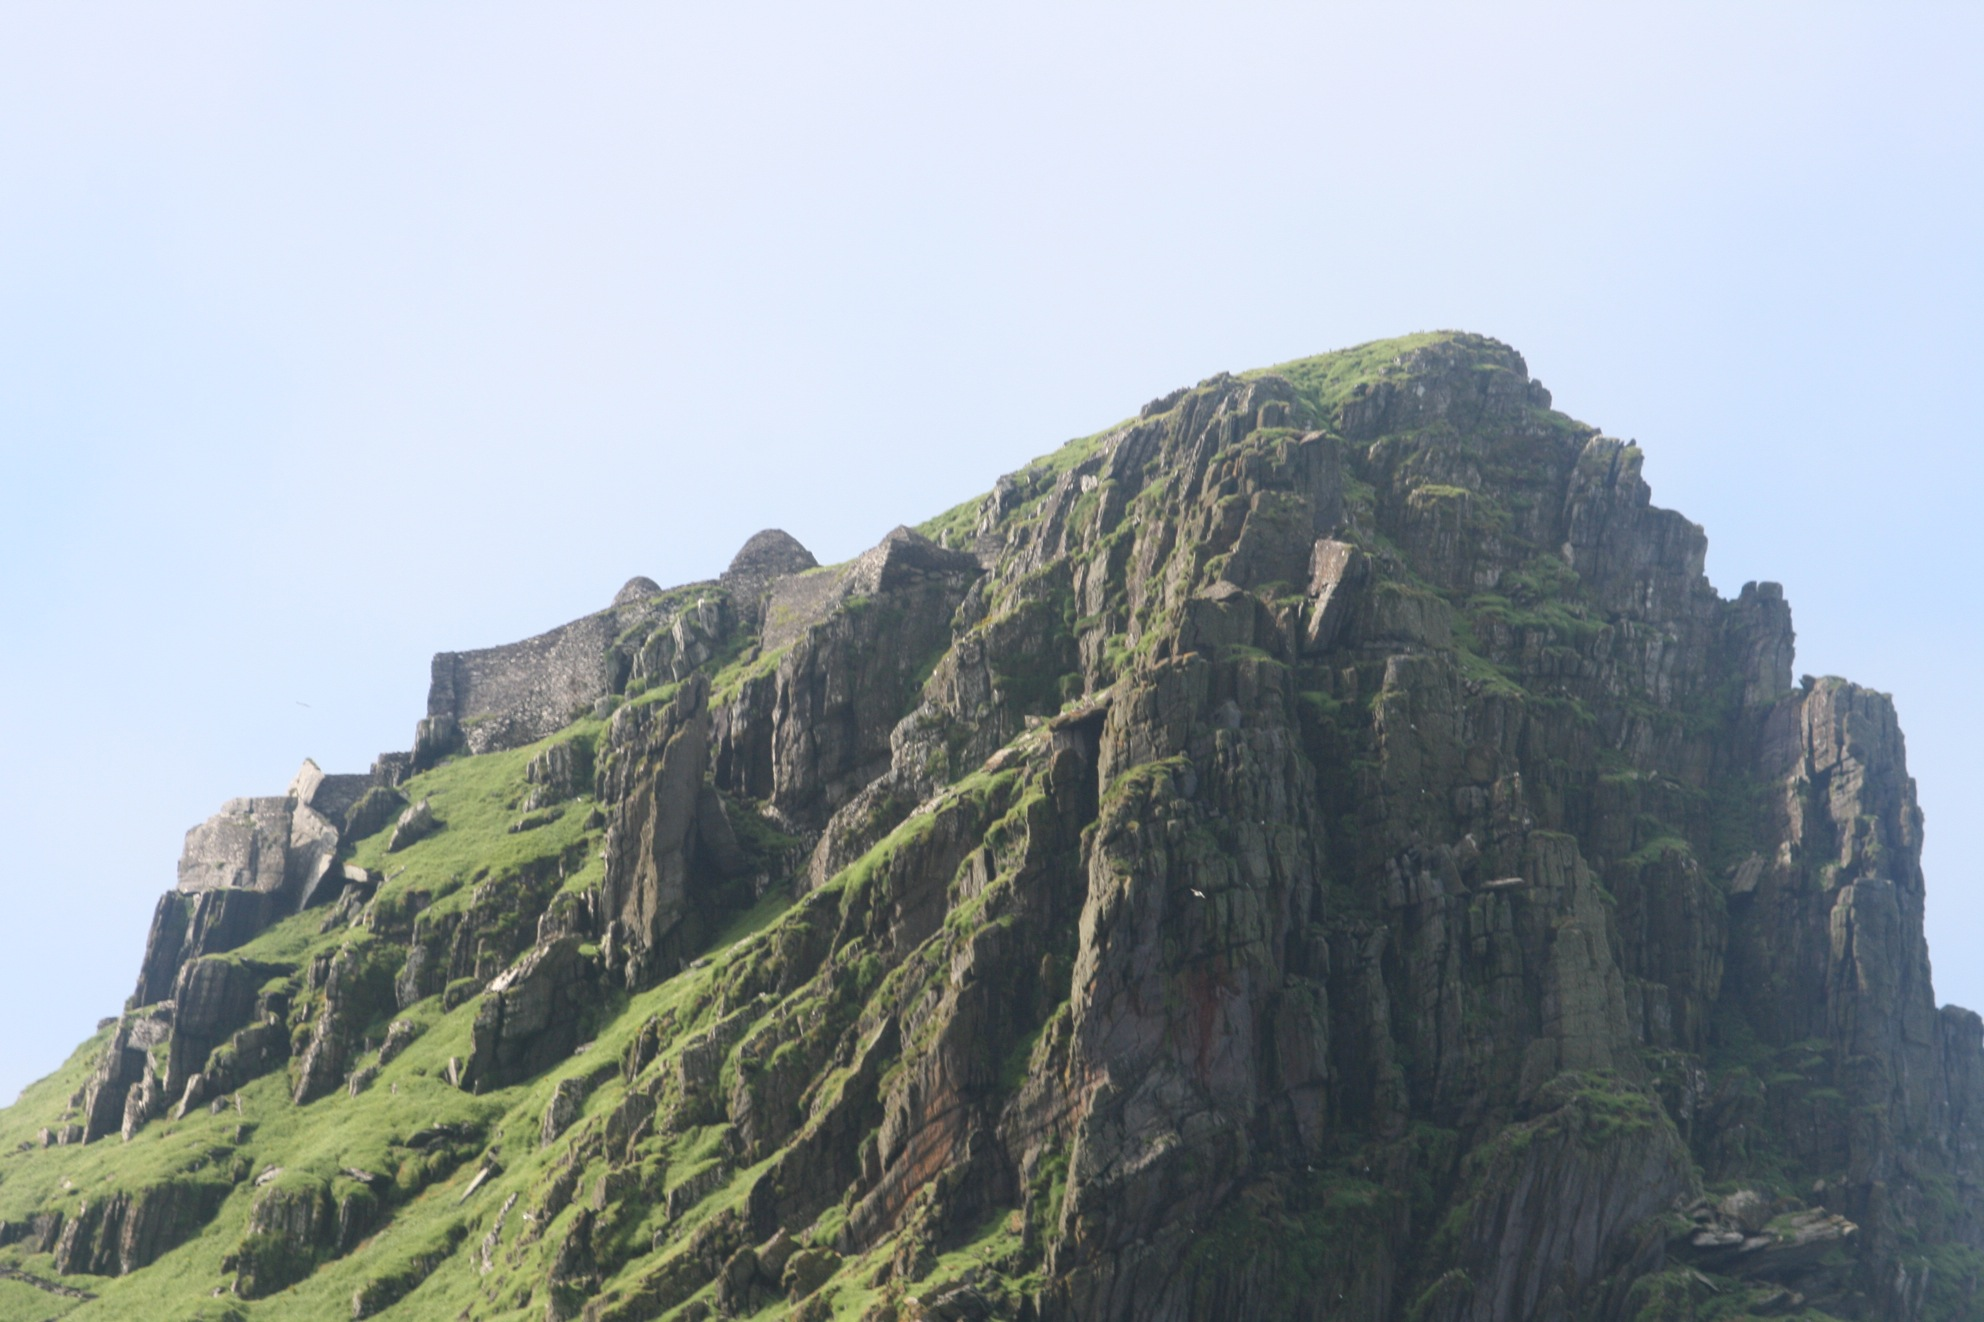 At the summit of Skellig Michael sits the monastery.